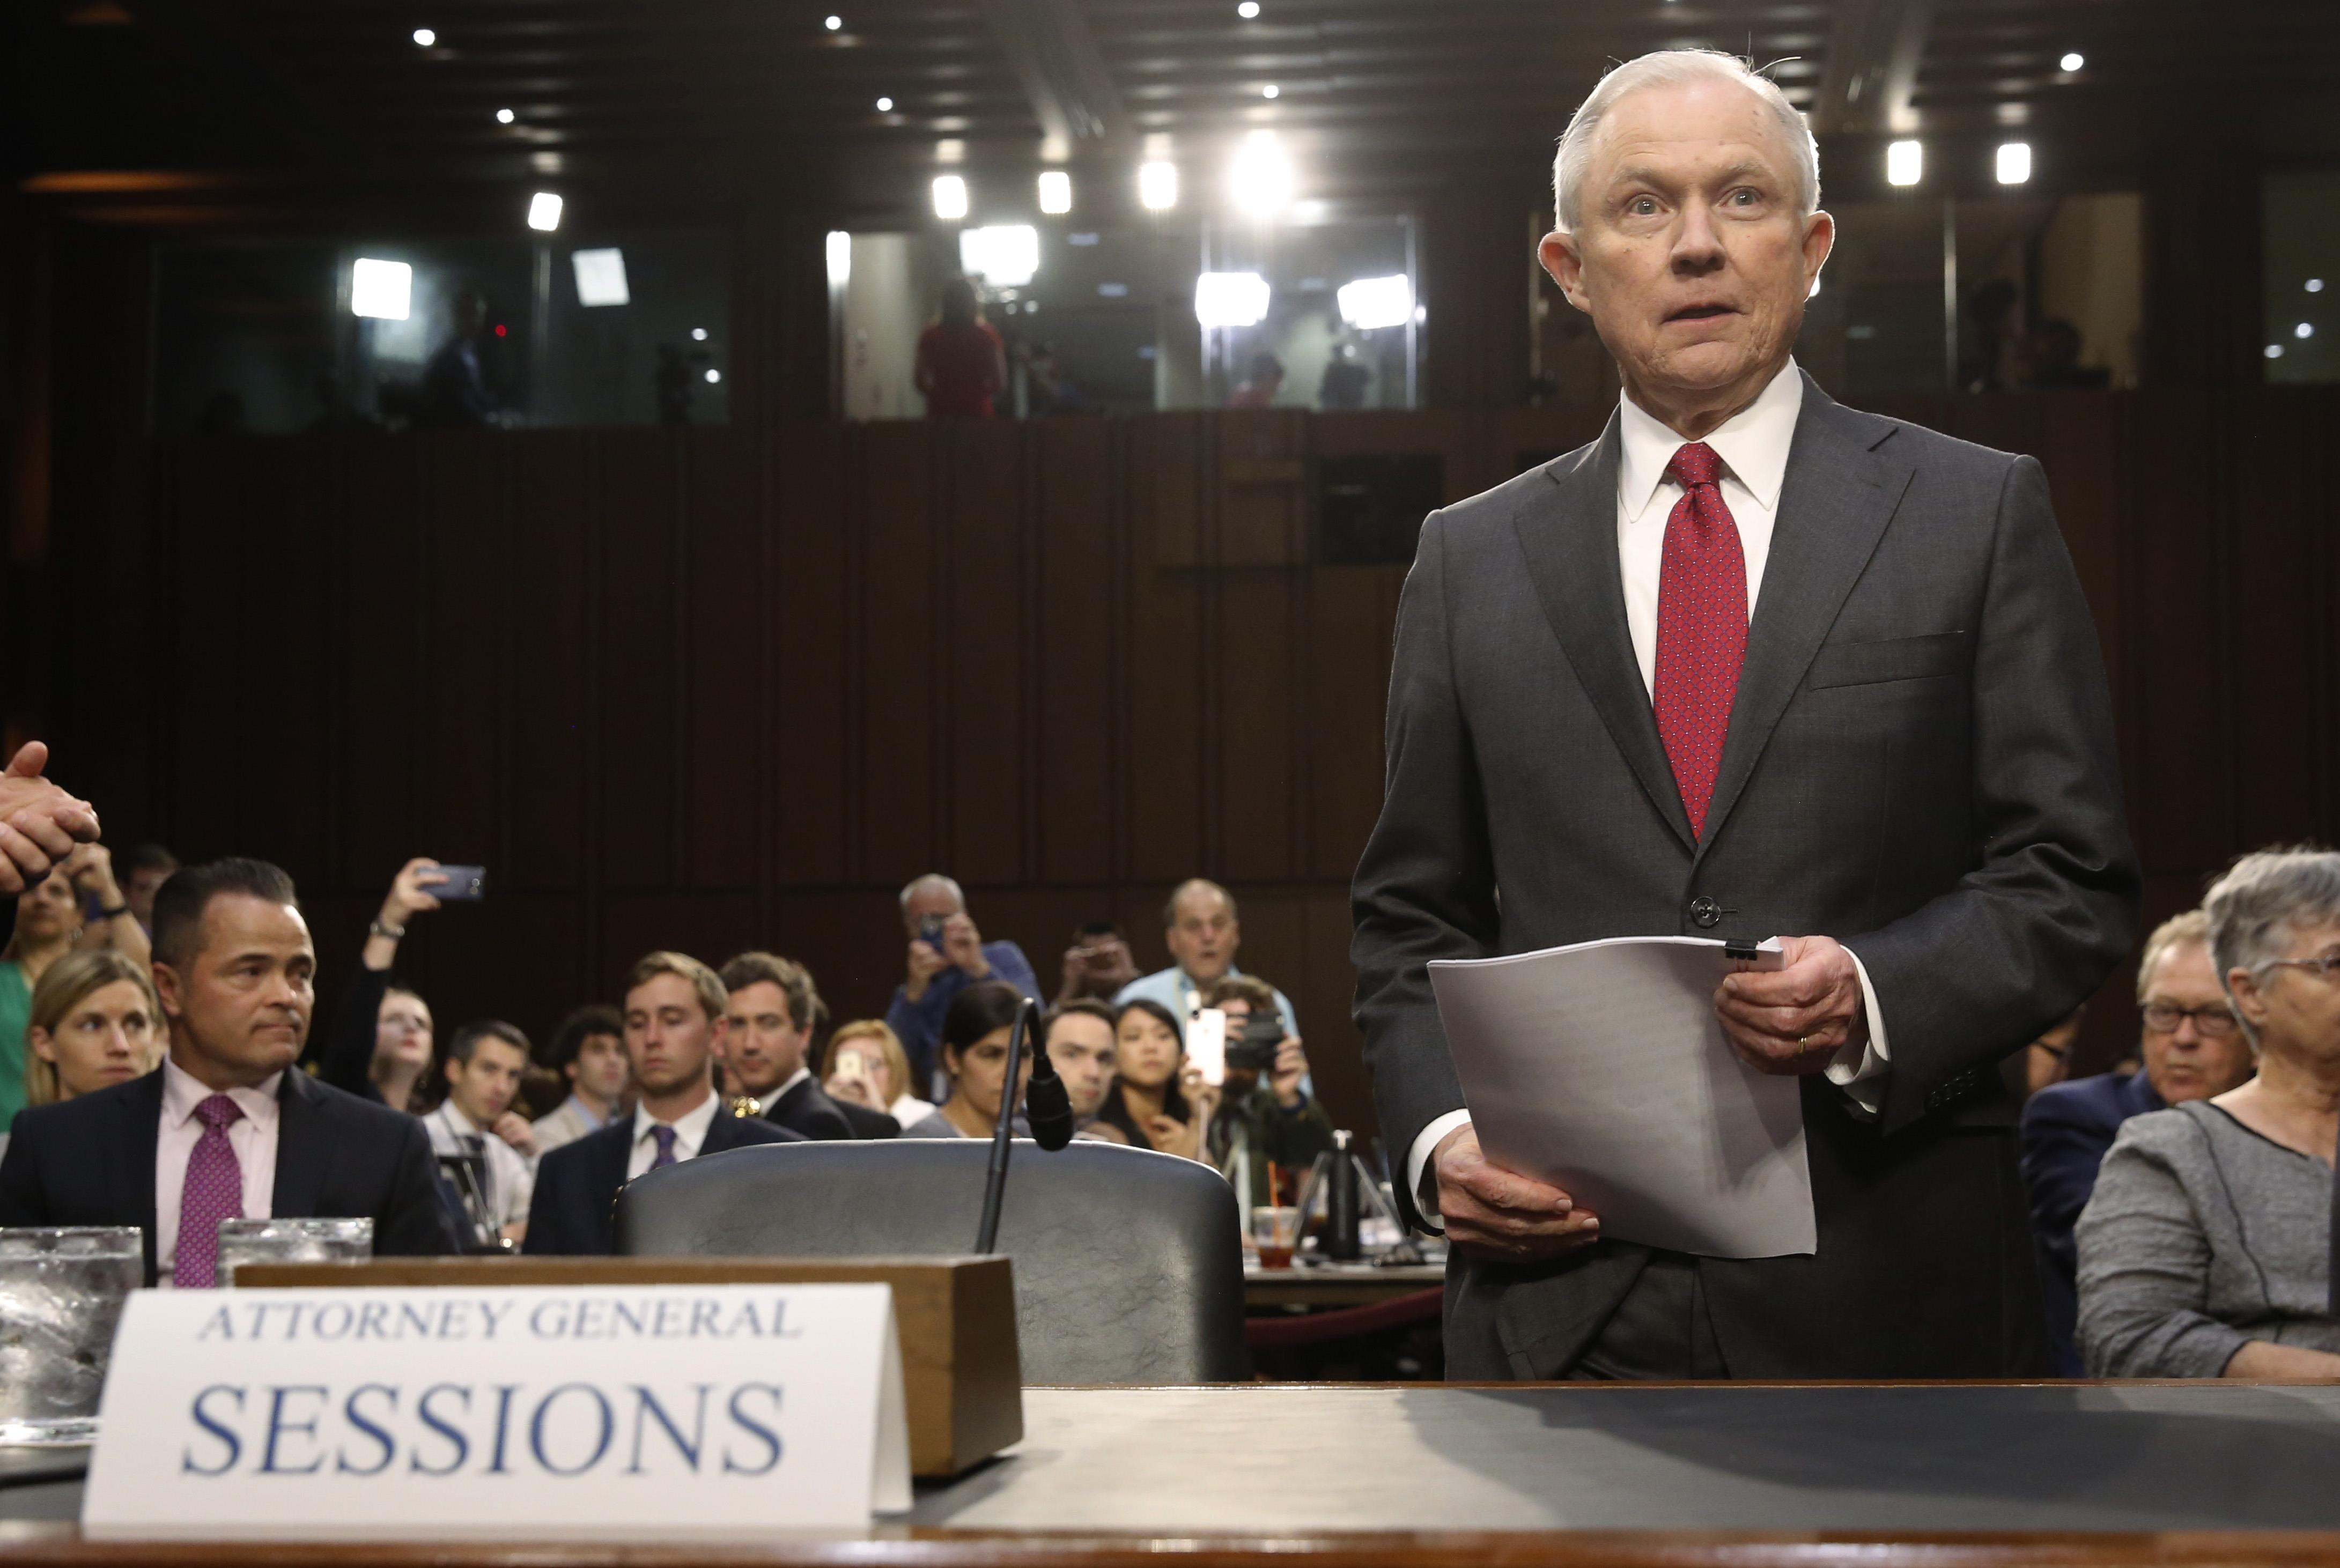 Russian intervention in us election was no one off irish times - Russian Intervention In Us Election Was No One Off Irish Times Sessions Calls Notion He